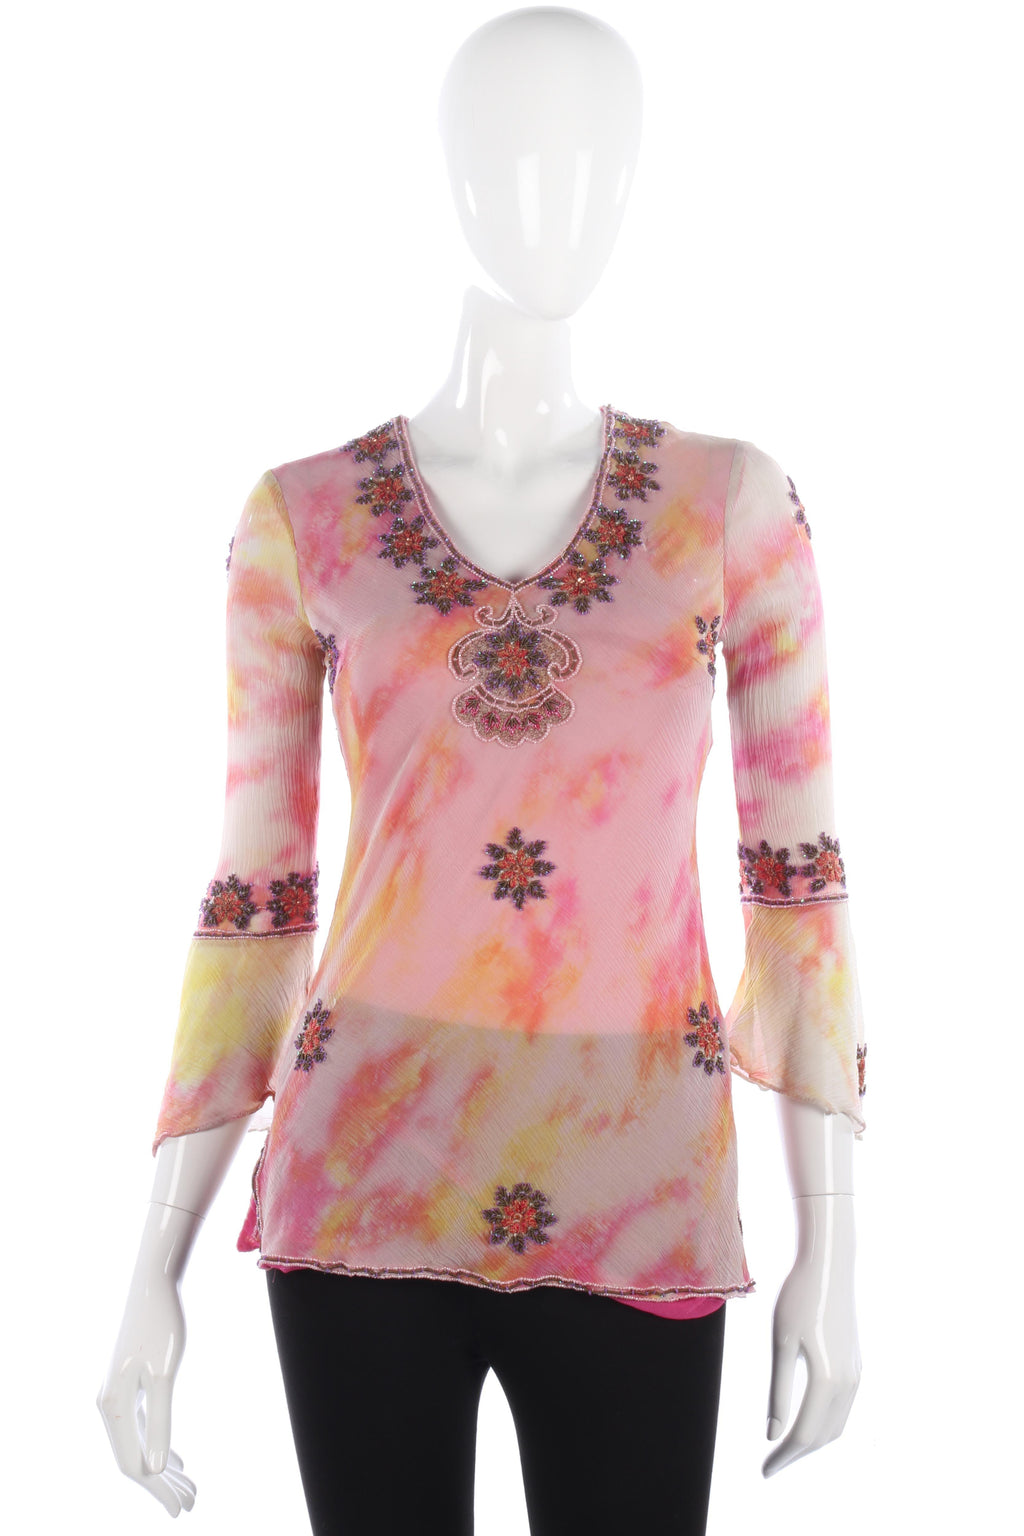 Aftershock Silk Embroidered Top Orange and Pink Size 8-10